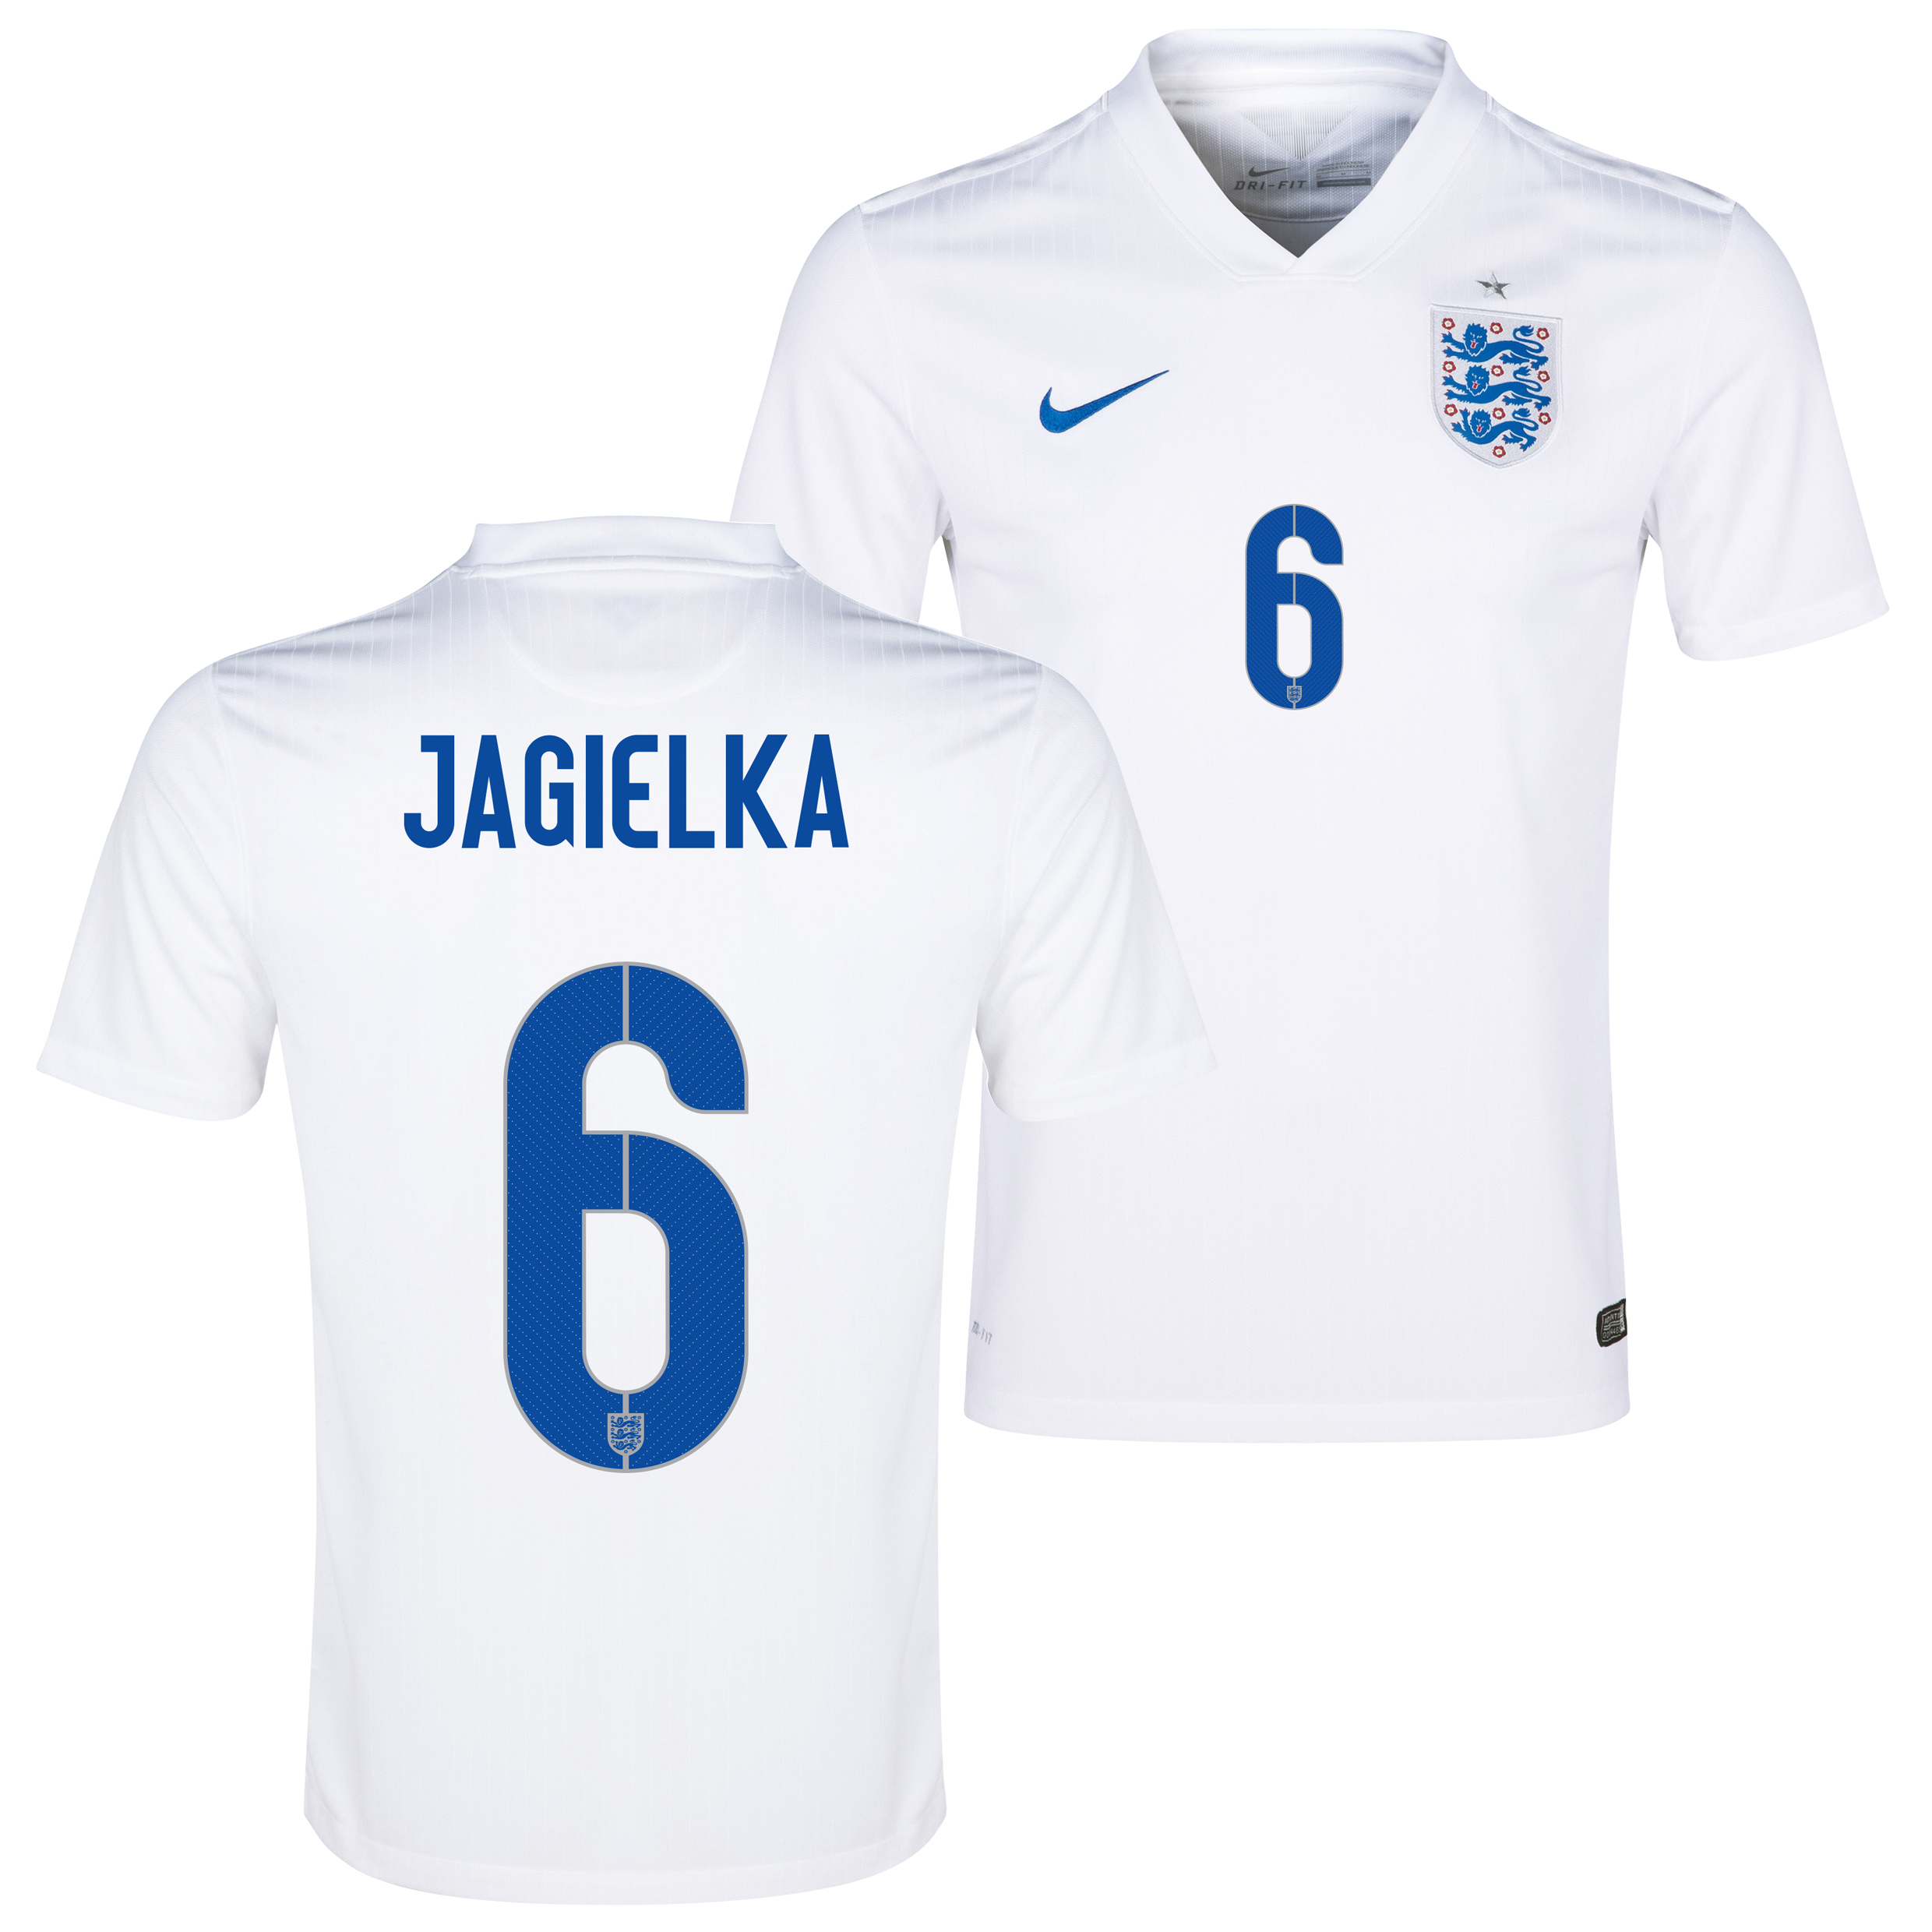 England Home Shirt 2014/15 White with Jagielka 6 printing